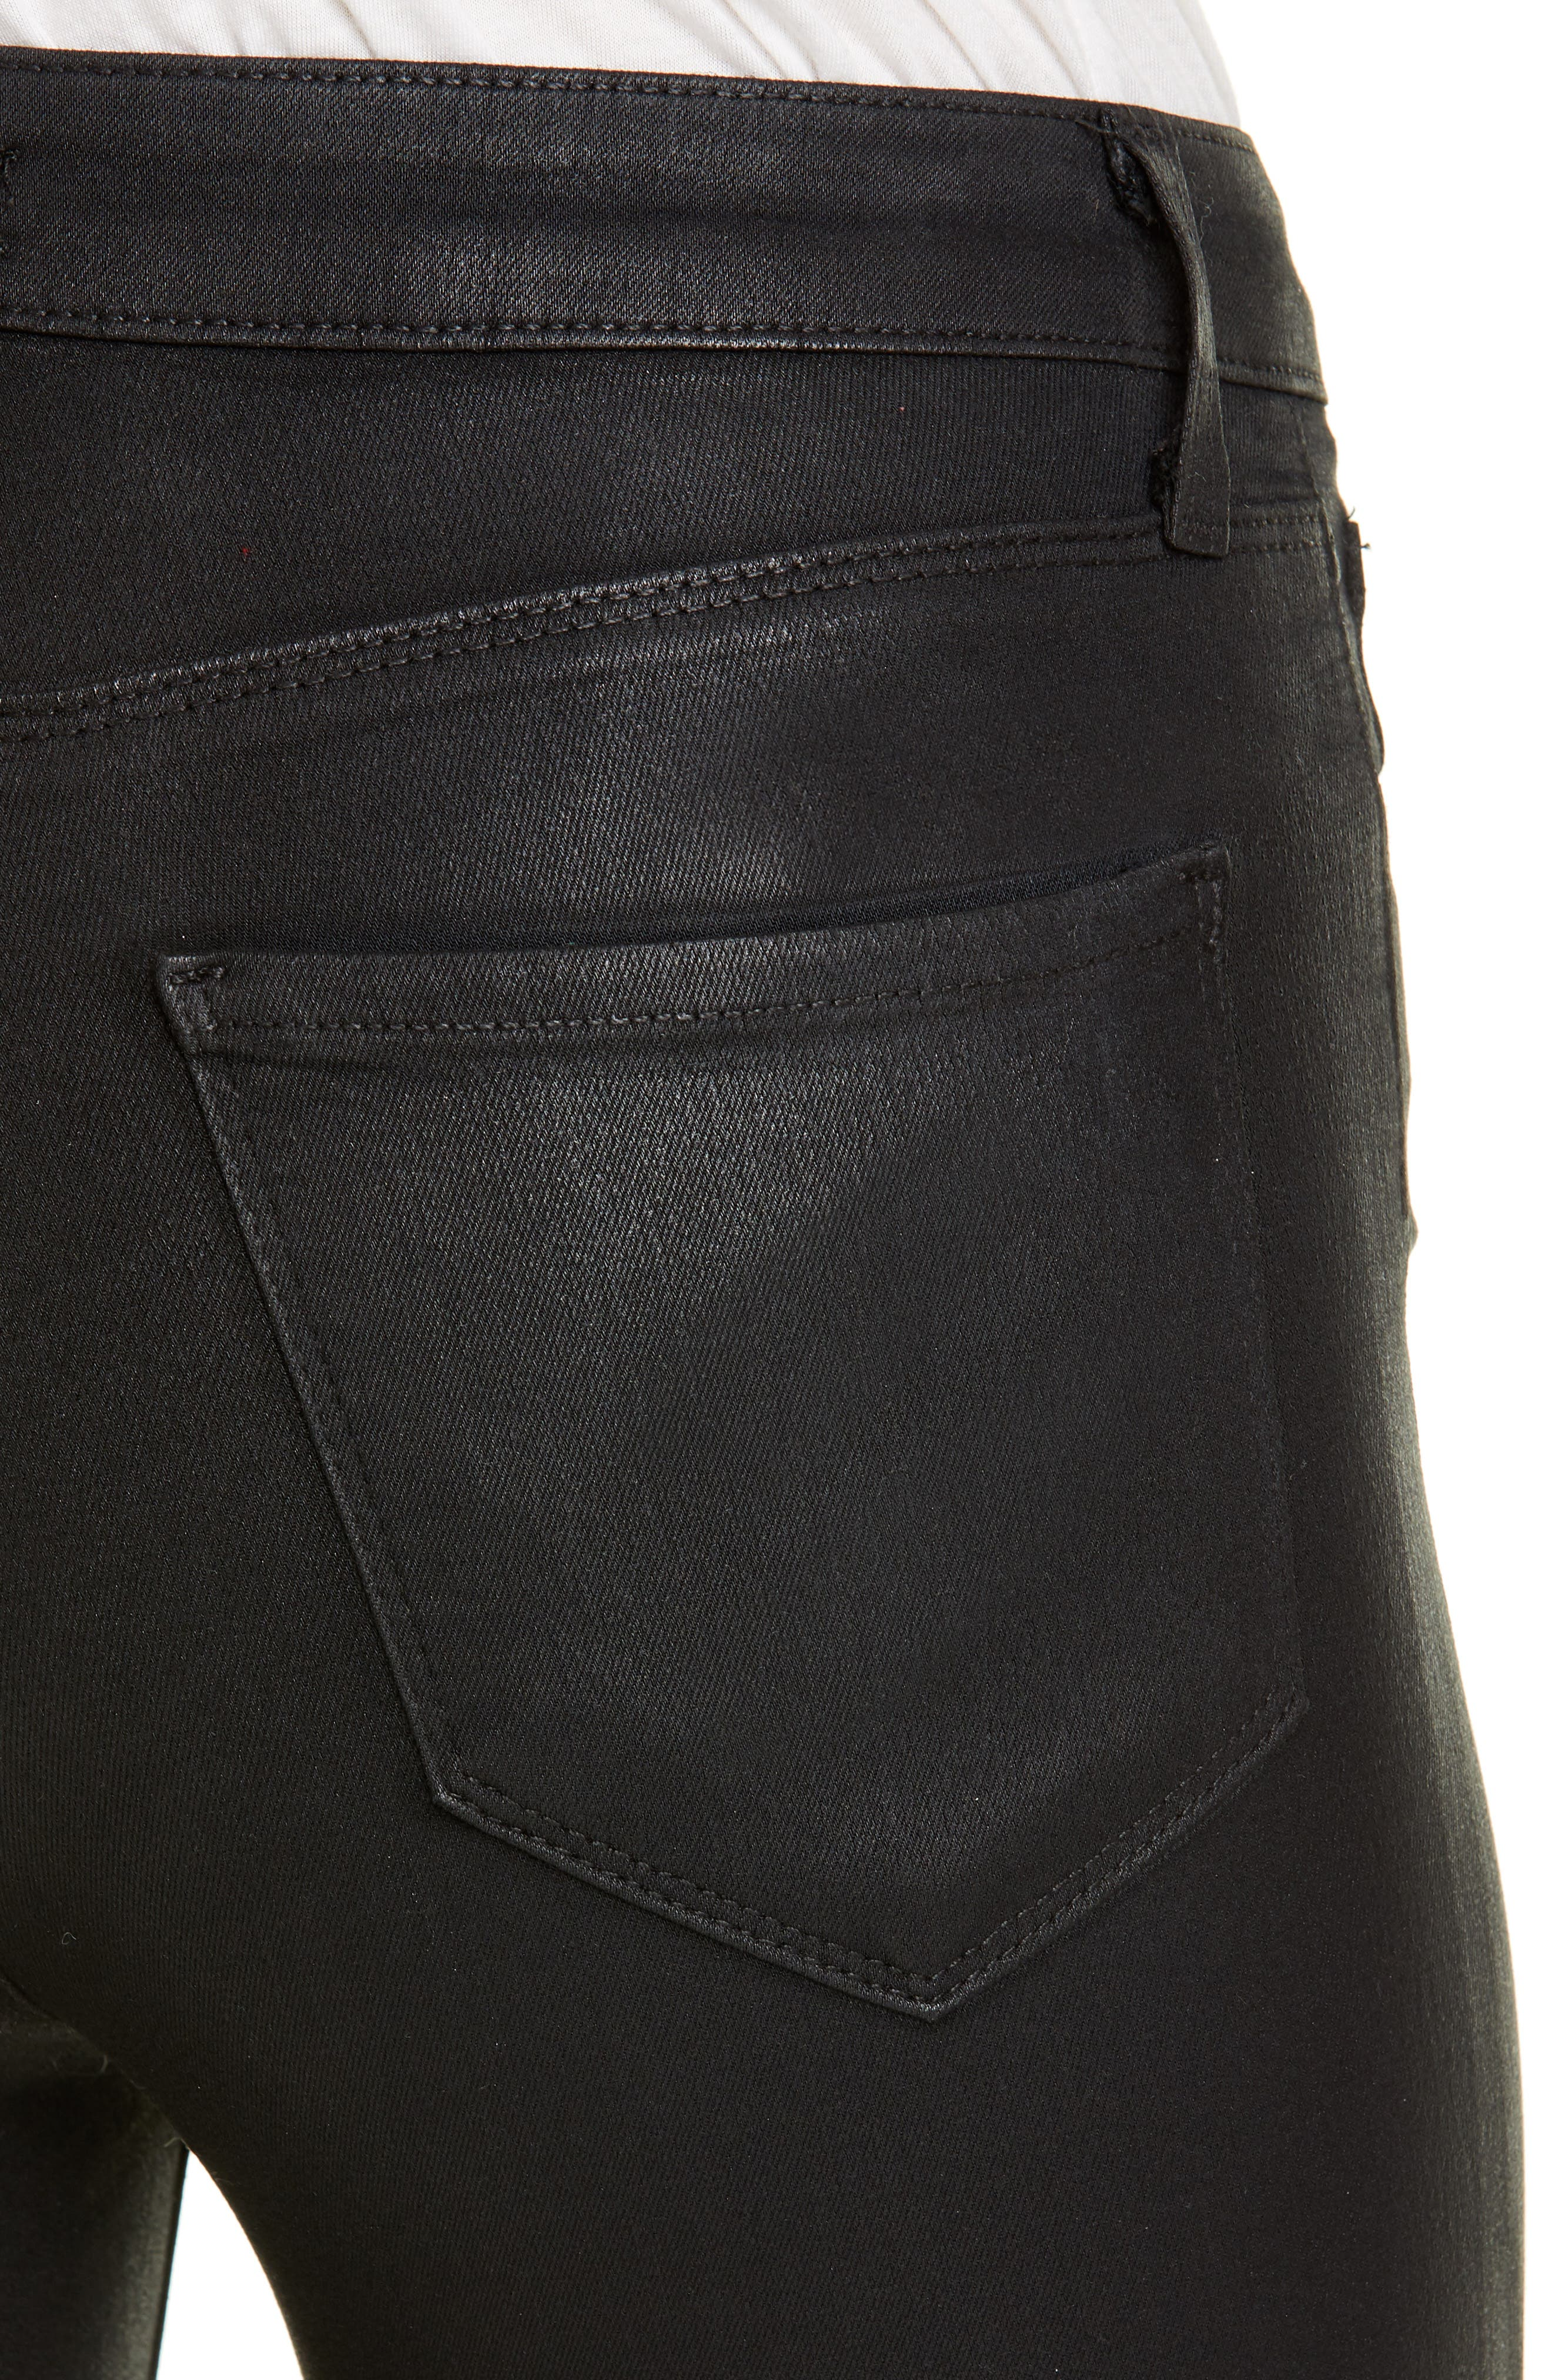 L'AGENCE, Coated High Waist Skinny Jeans, Alternate thumbnail 4, color, BLACK COATED